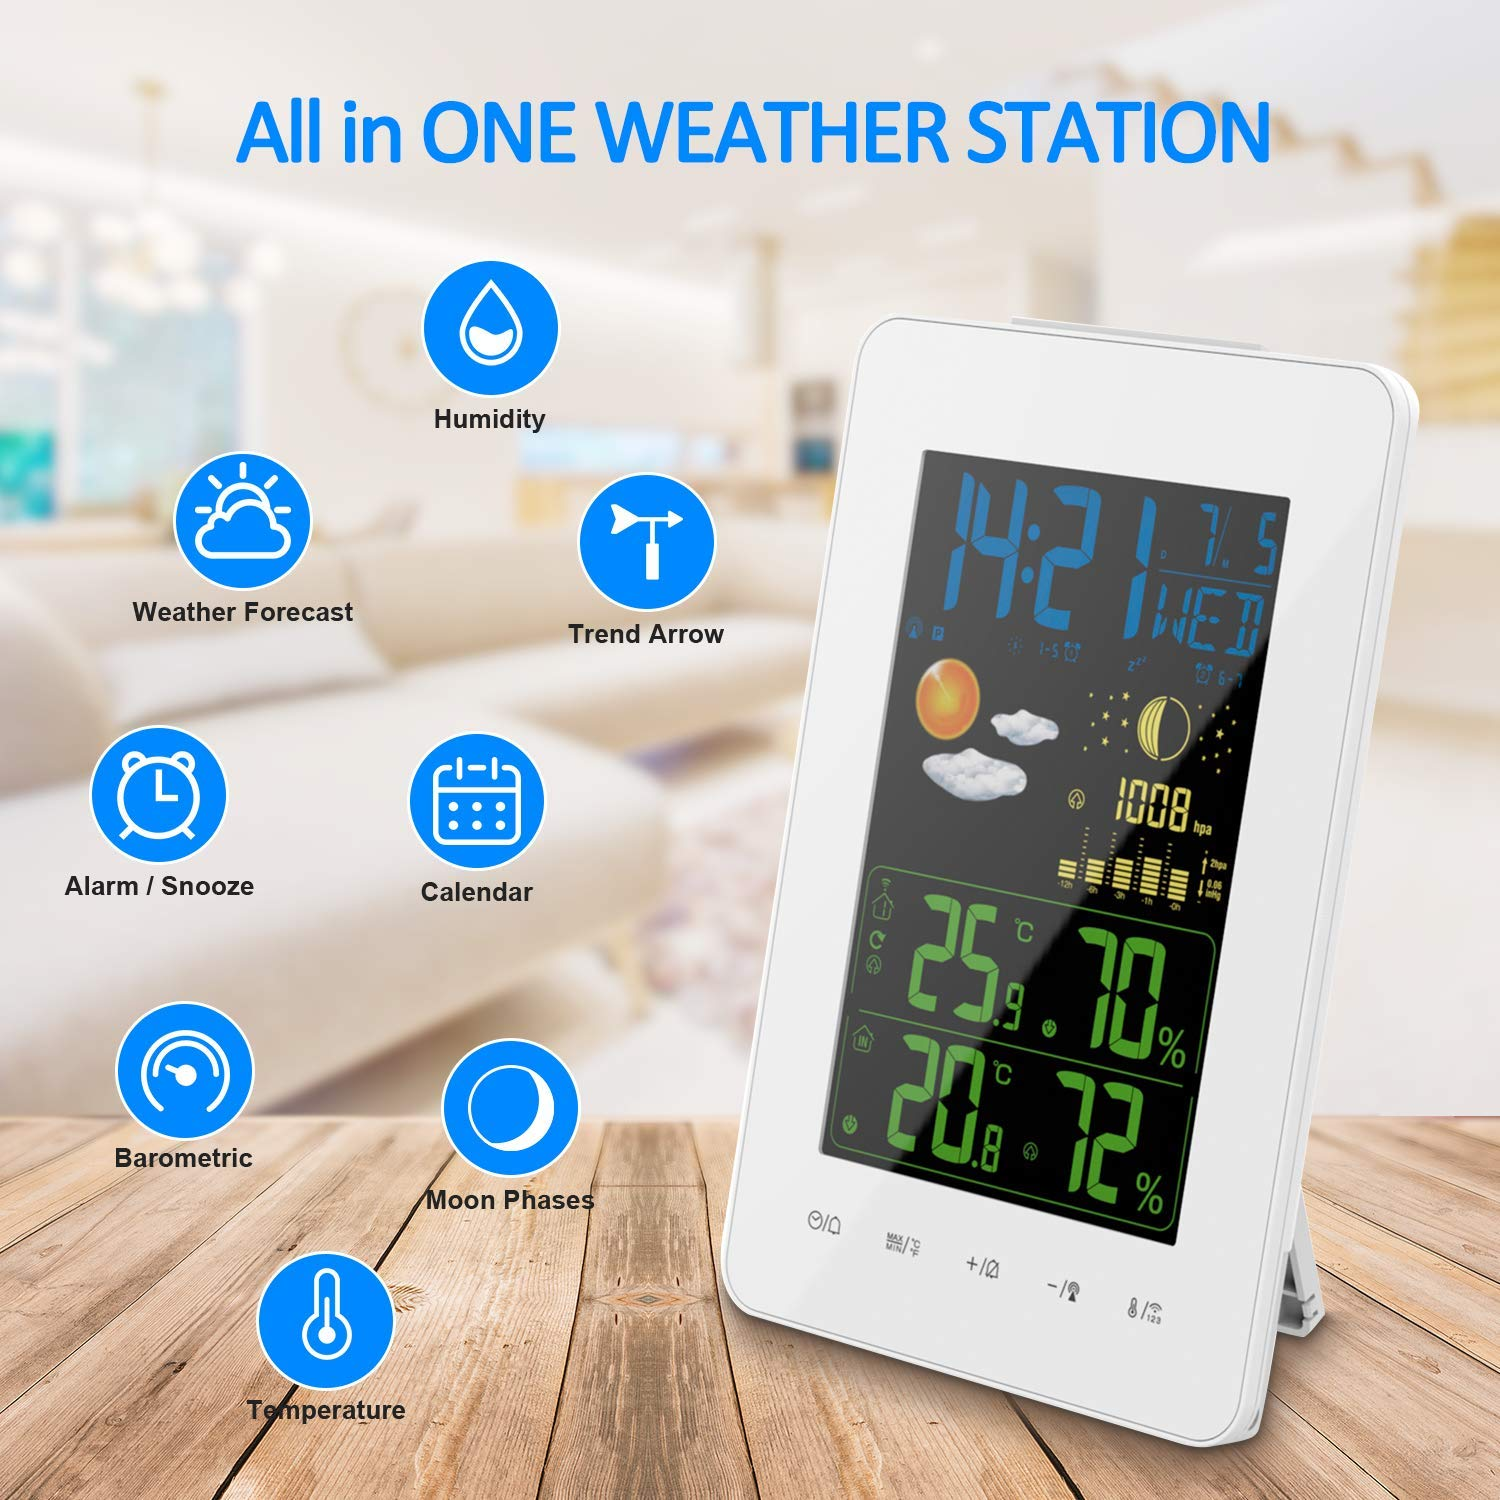 Oritronic Wireless Weather Station Digital Forecast Station Indoor Outdoor Thermometer With Remote Sensor Clock Trend Temperature And Humidity Amazon Sg Lawn Garden